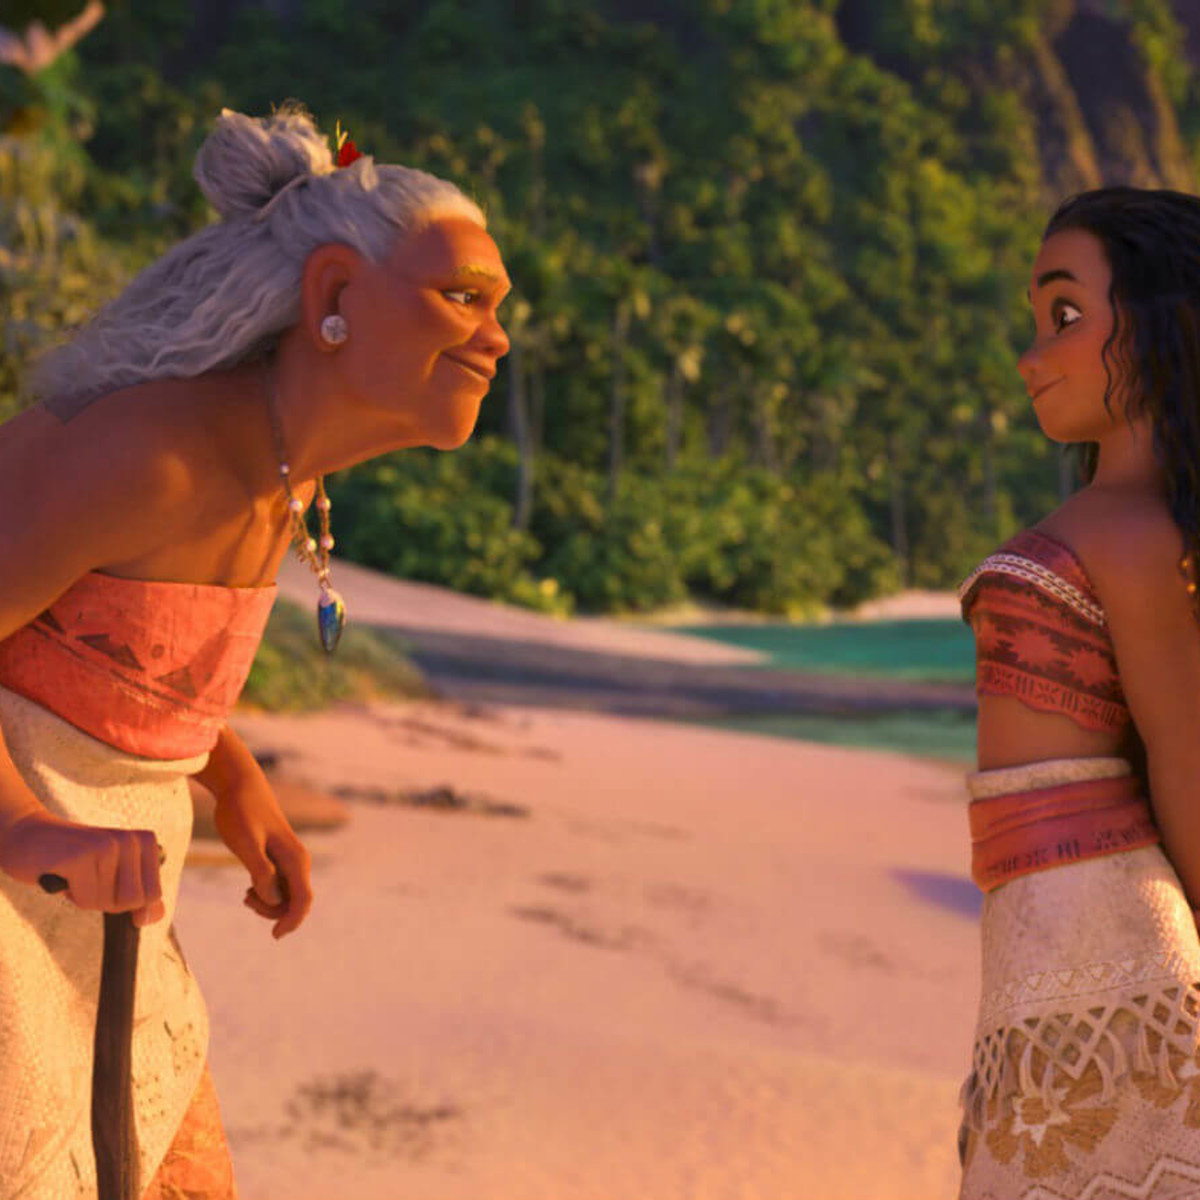 Gramma Tala (Rachel House) and Moana (Auli'i Cavalho) in Moana